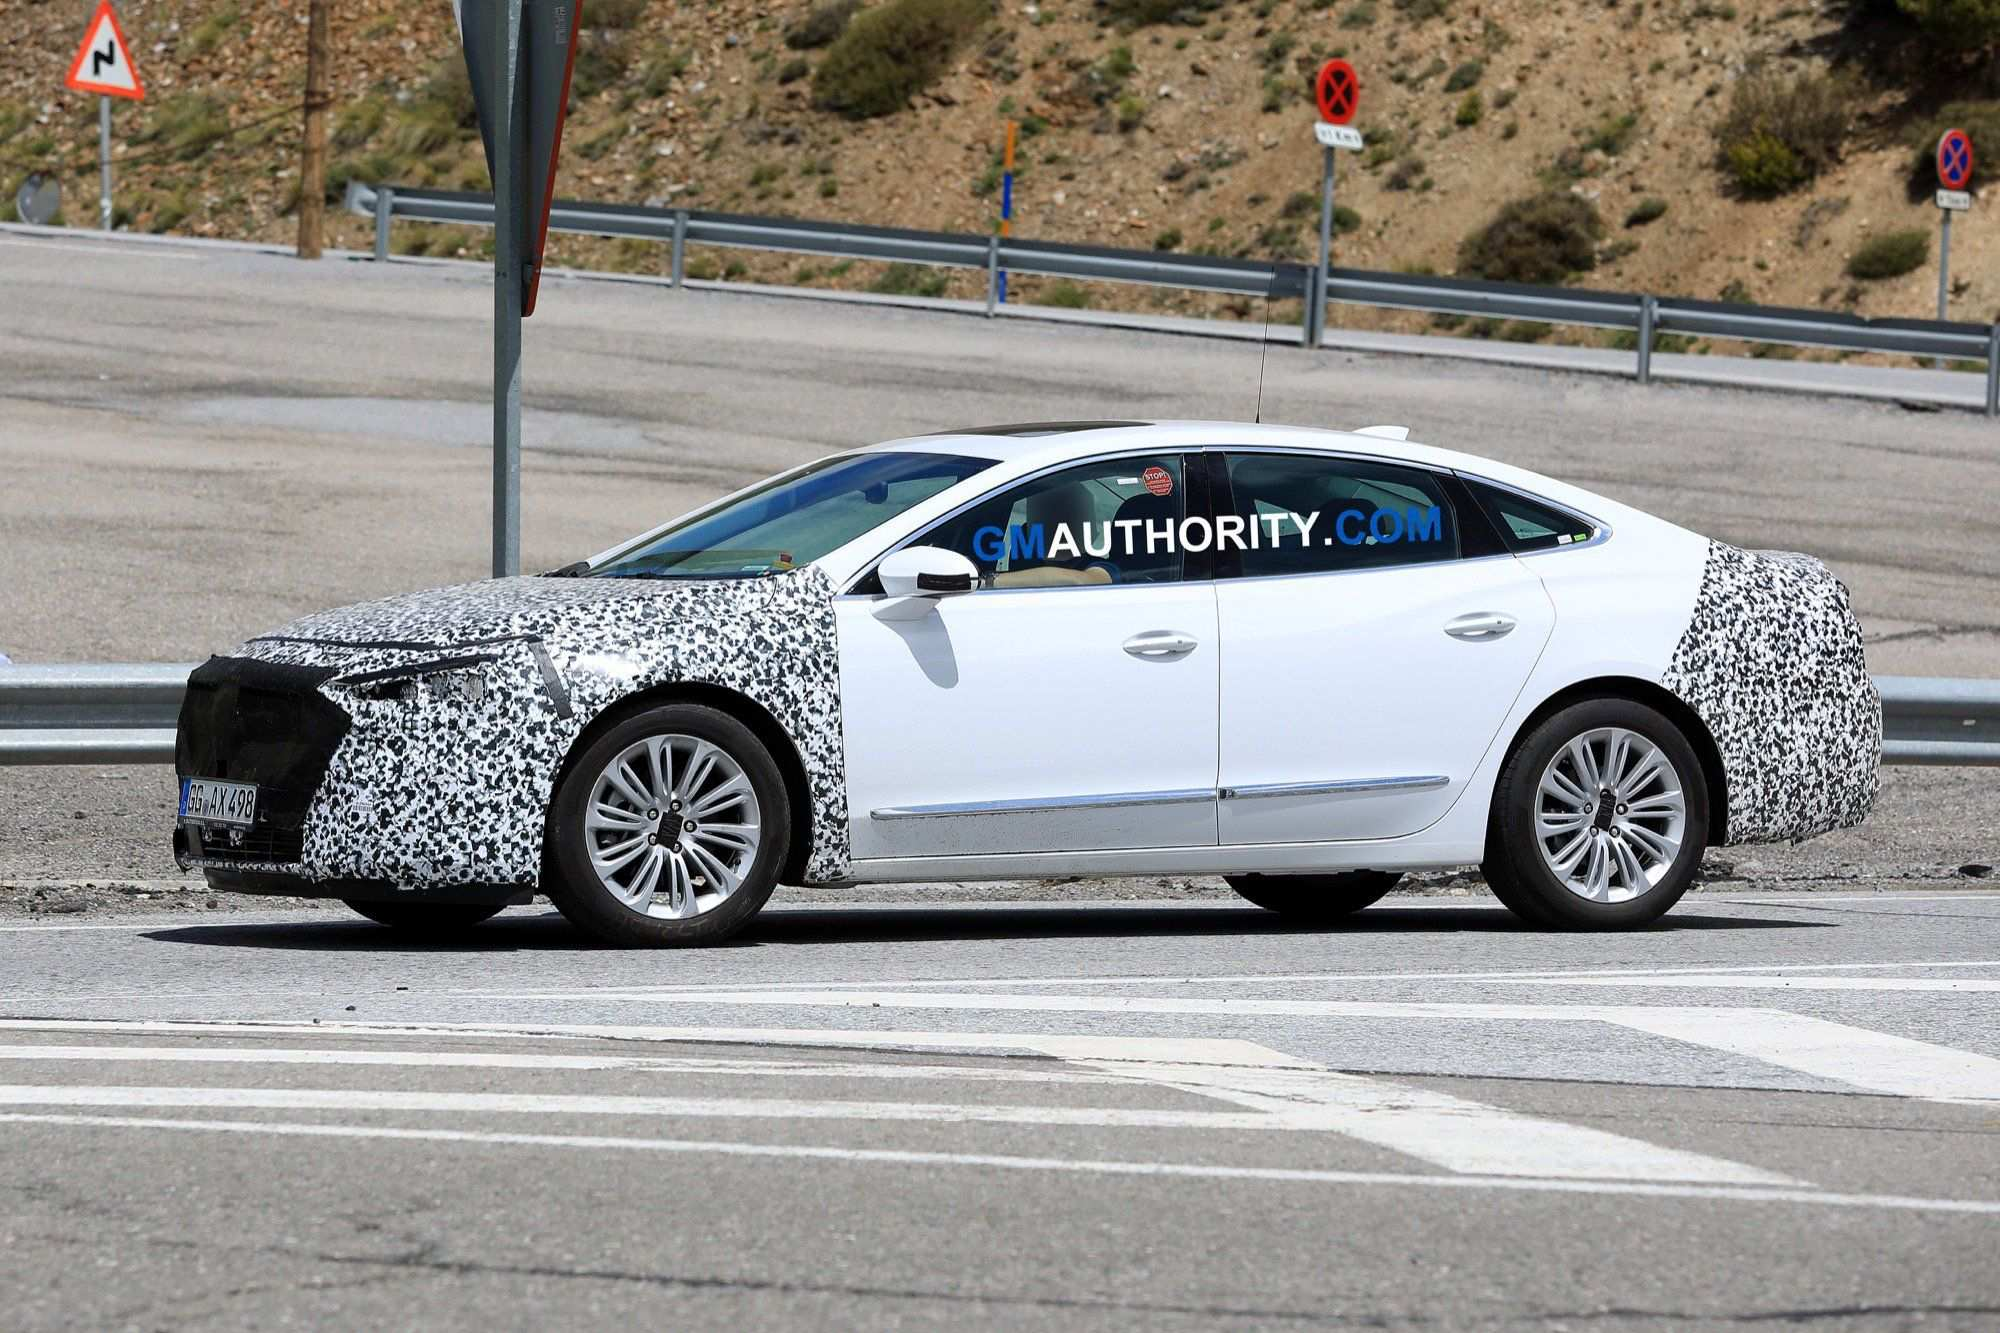 60 New 2020 Buick Verano Spy Style for 2020 Buick Verano Spy